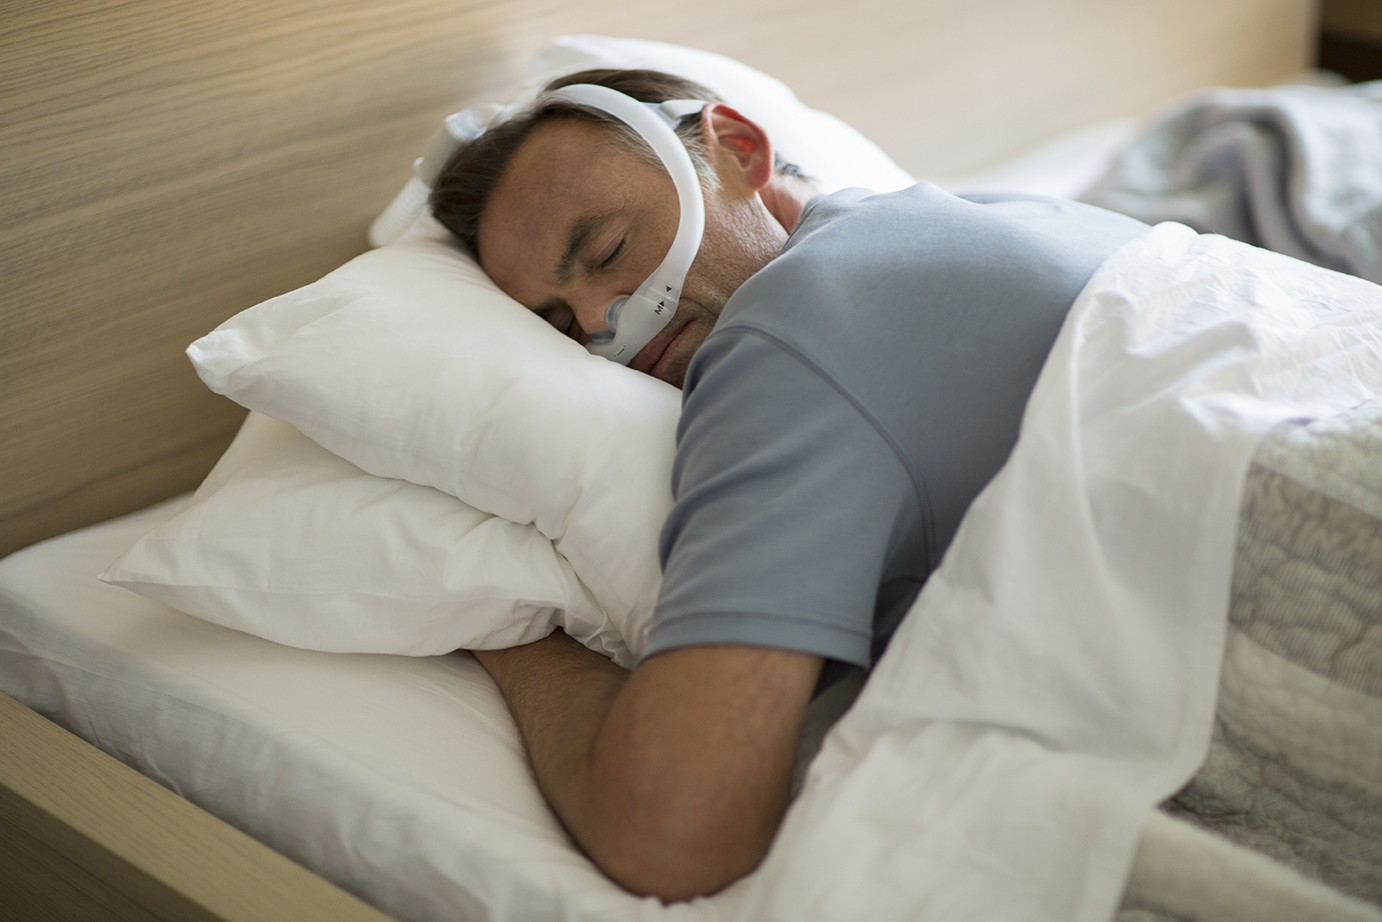 cpap stomach sleep pillow review